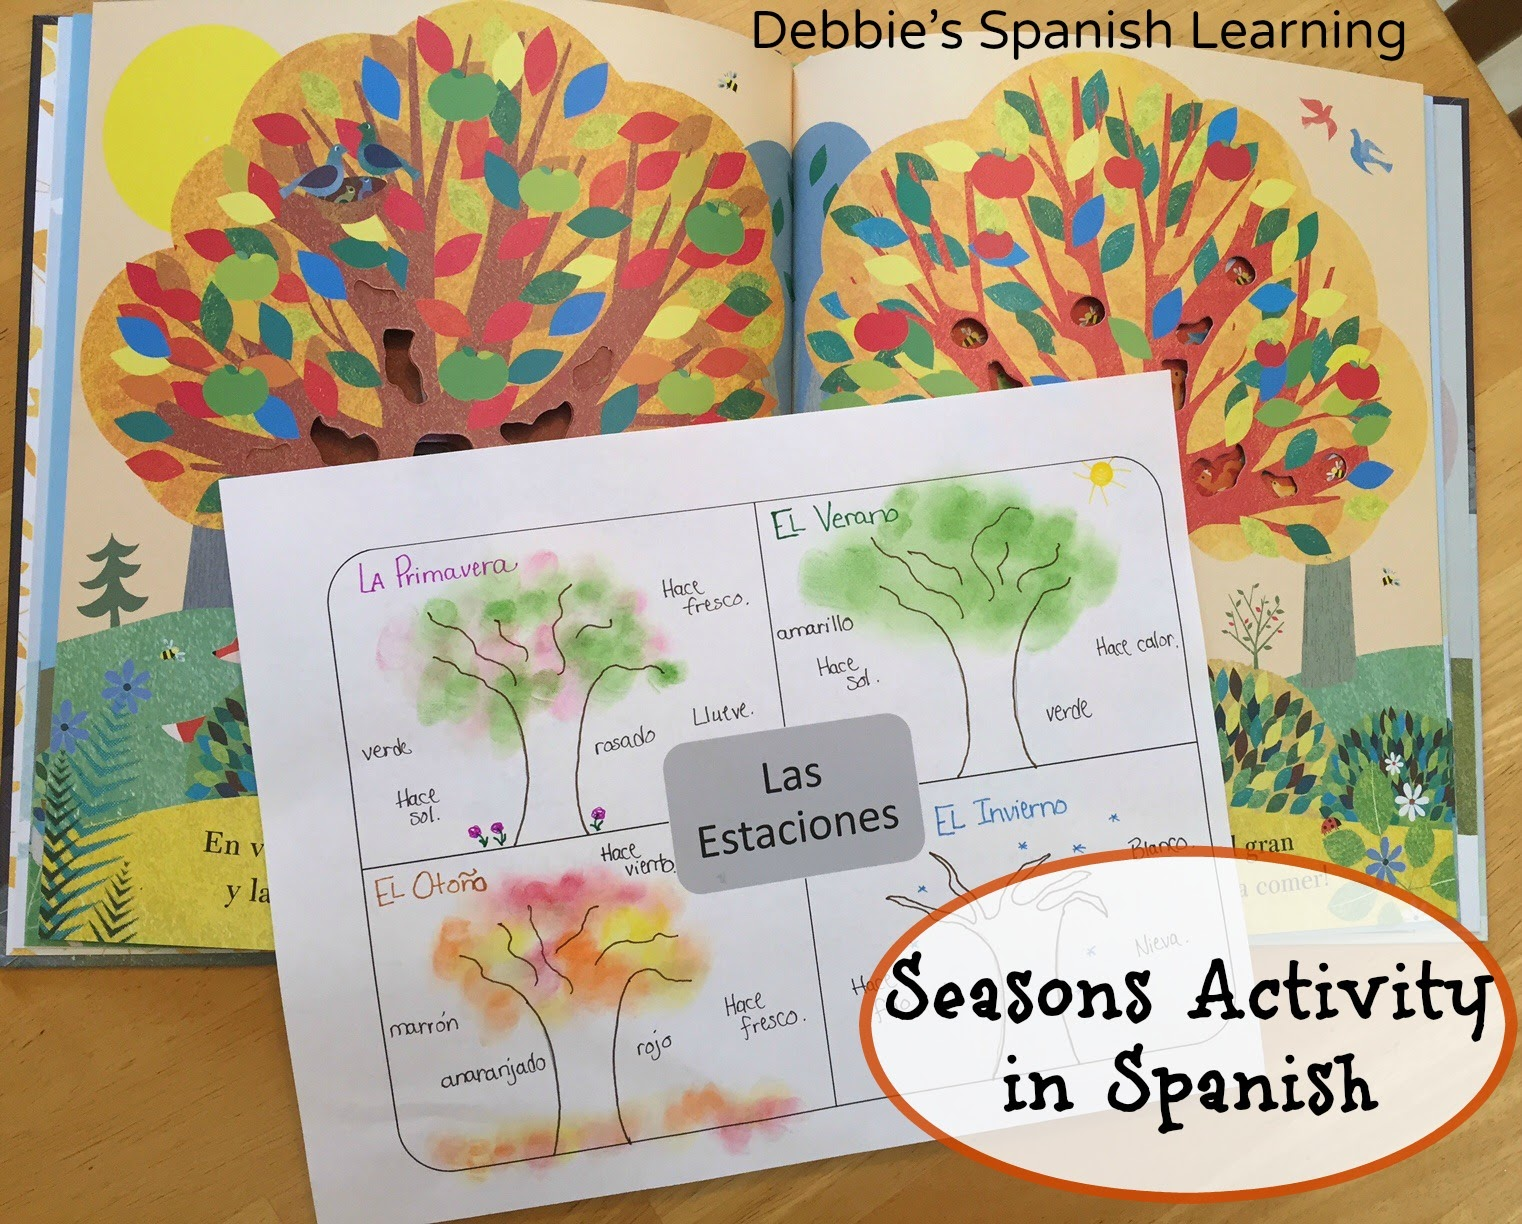 picture regarding Seasons Printable named Debbies Spanish Discovering: Seasons Things to do within Spanish